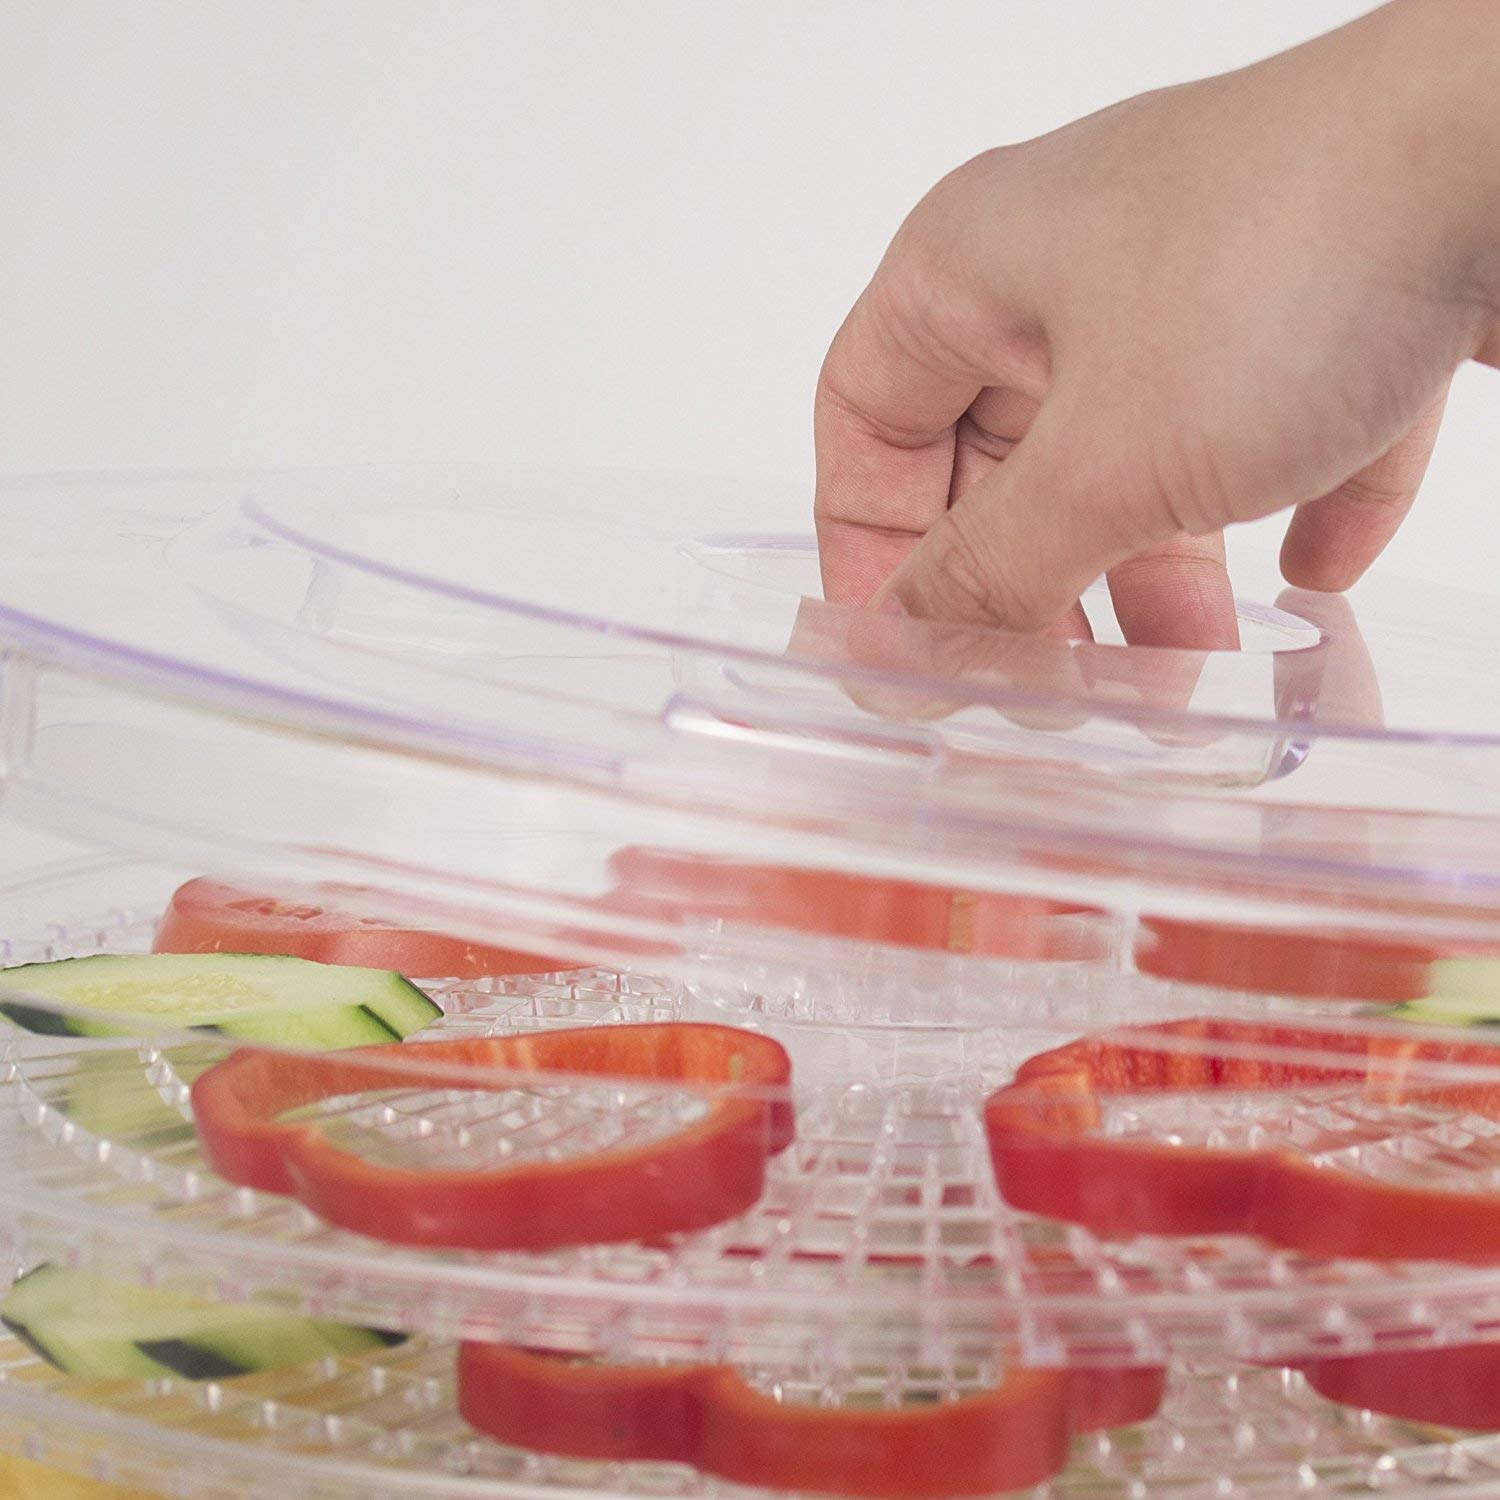 716PPdiF0eL. SL1500 The 5 Best Food Dehydrator in India 2020 (Review)